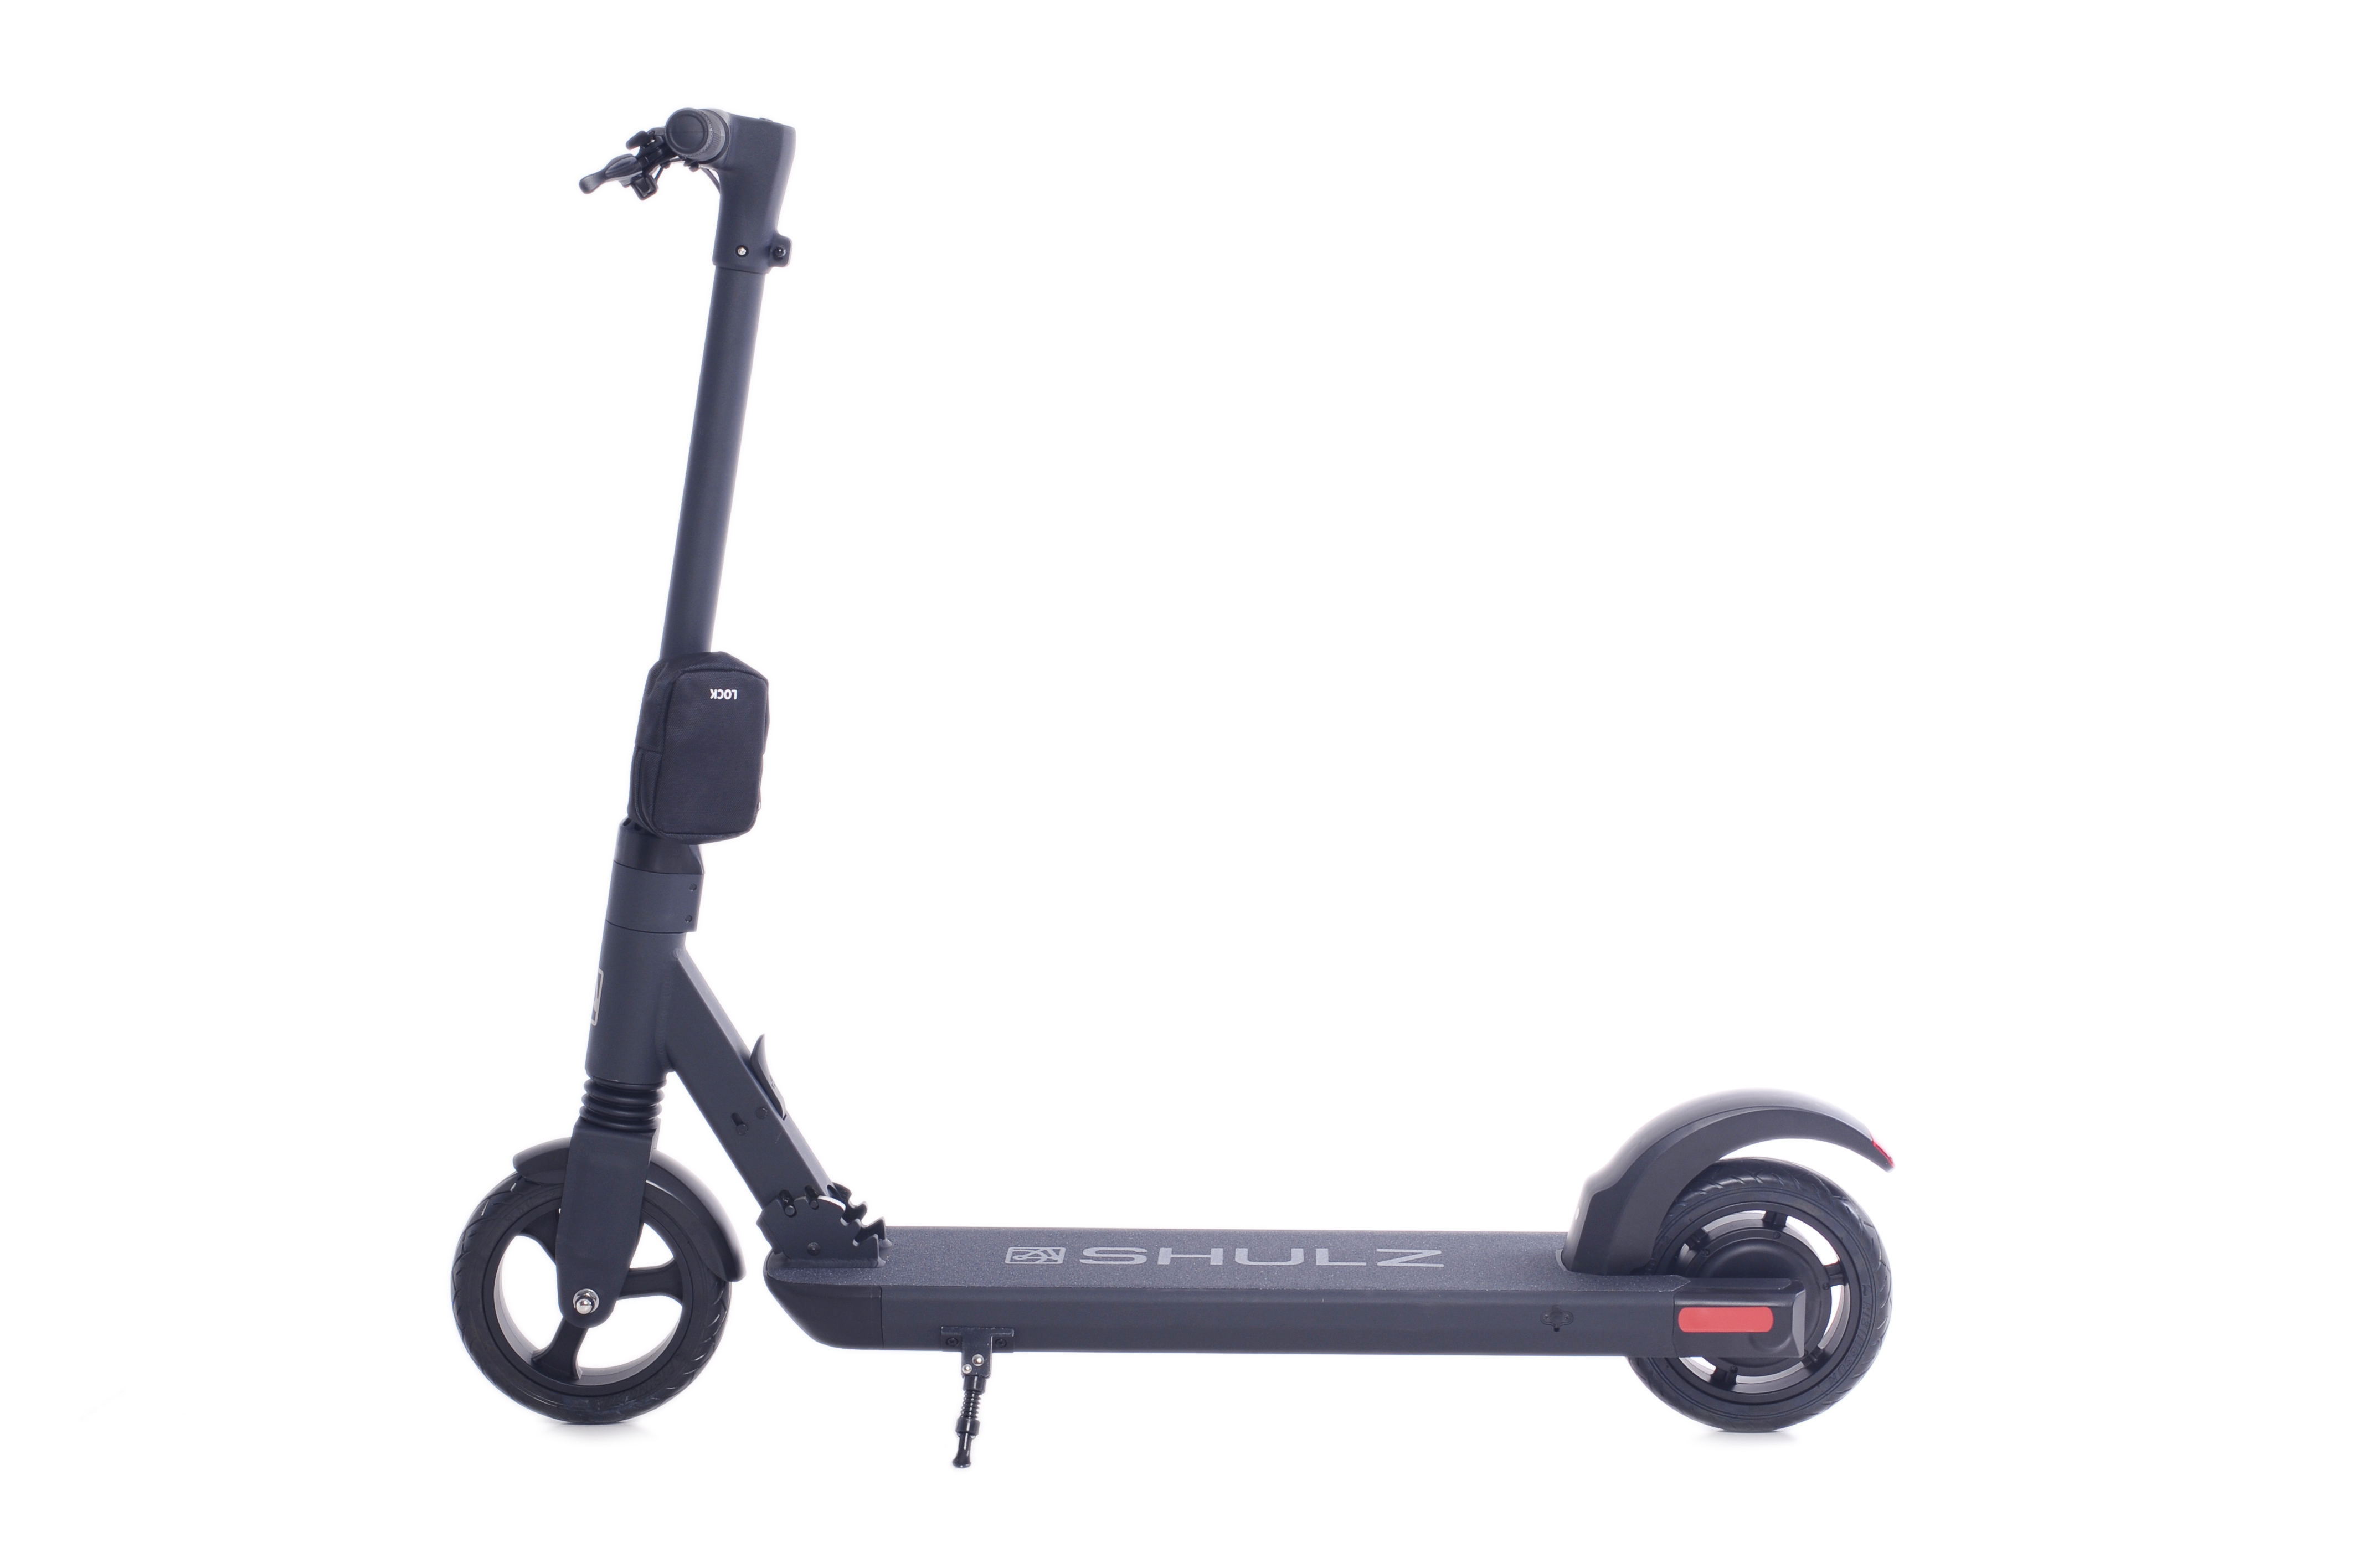 Shulz GX03 Scooter